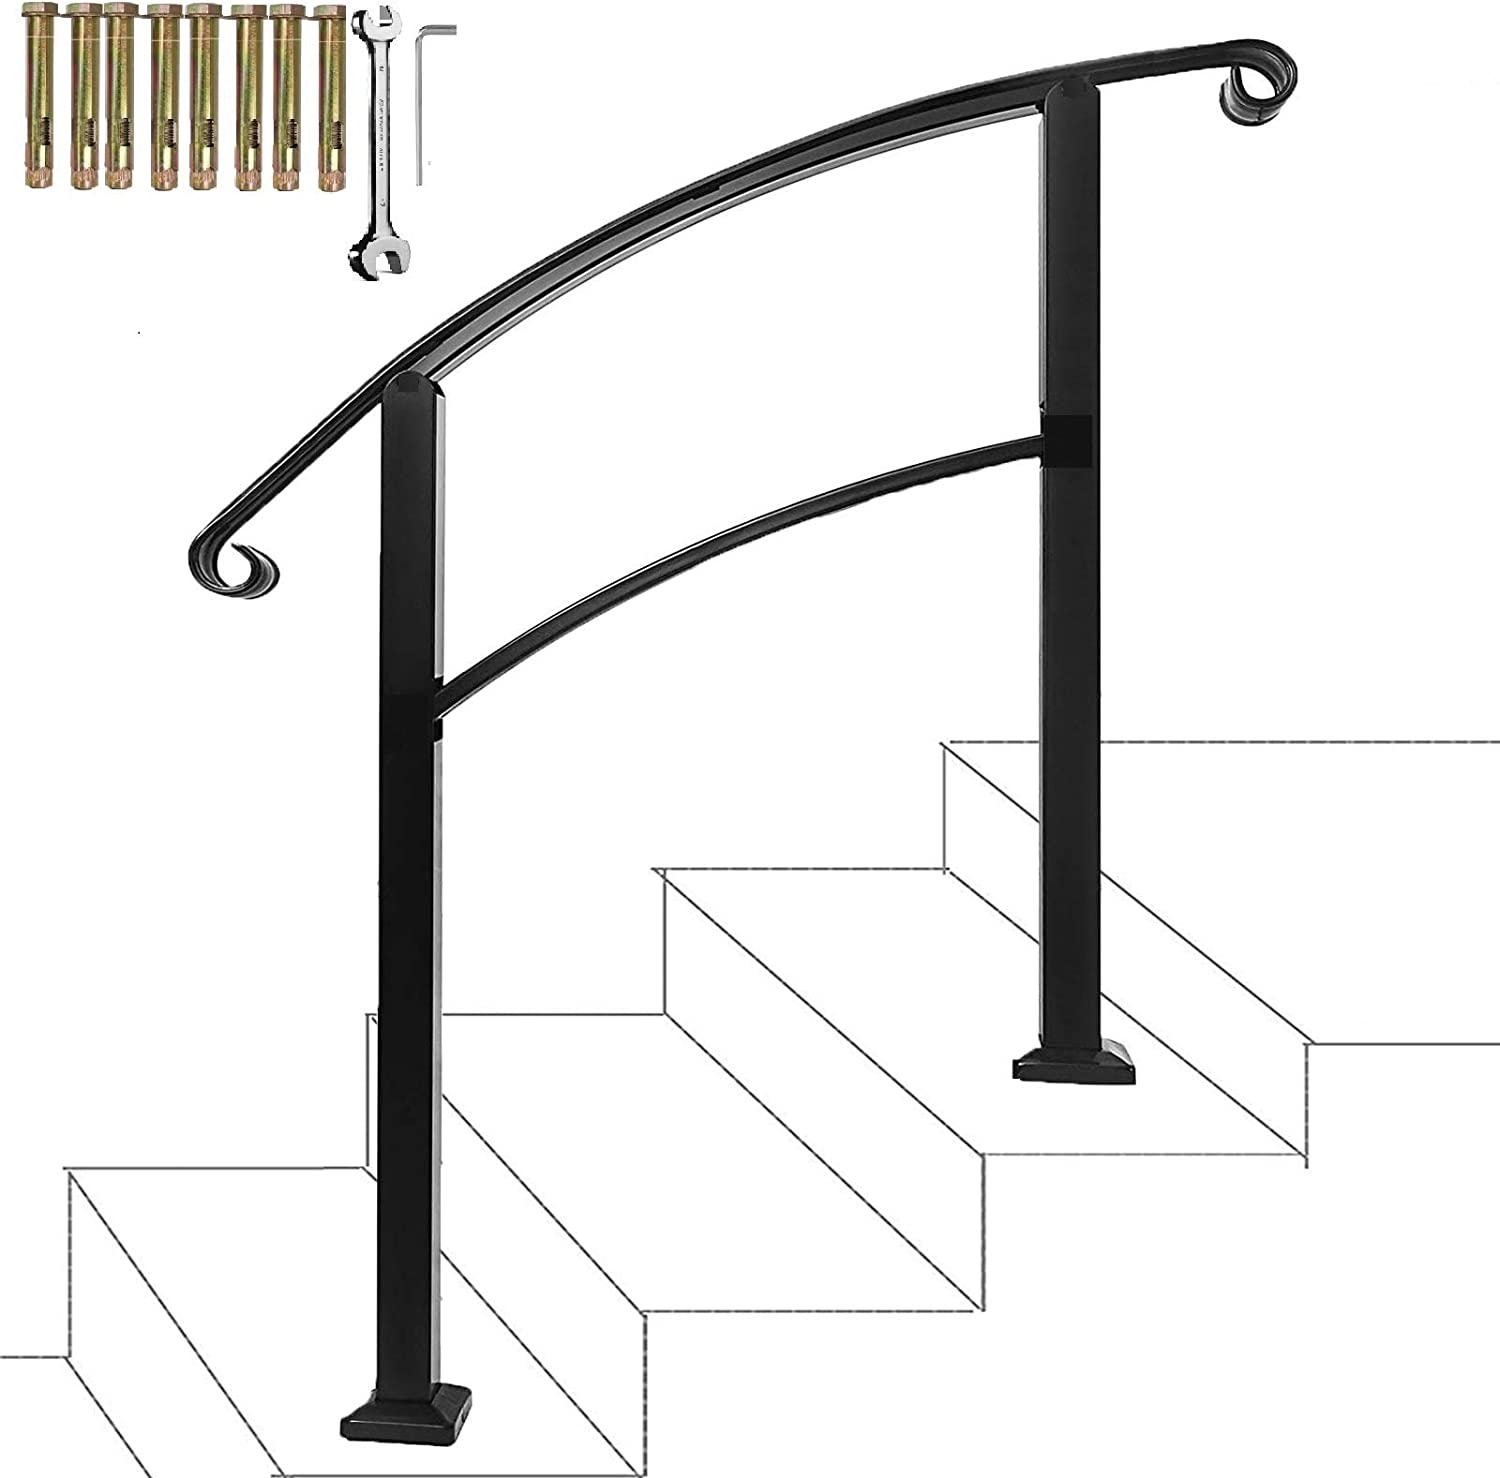 Atemou Stair Handrail 3-Step Adjustable Stair Rail Wrought Iron Handrail 1 or 3 Steps Handrail with Installation Kit for Indoor Outdoor Steps